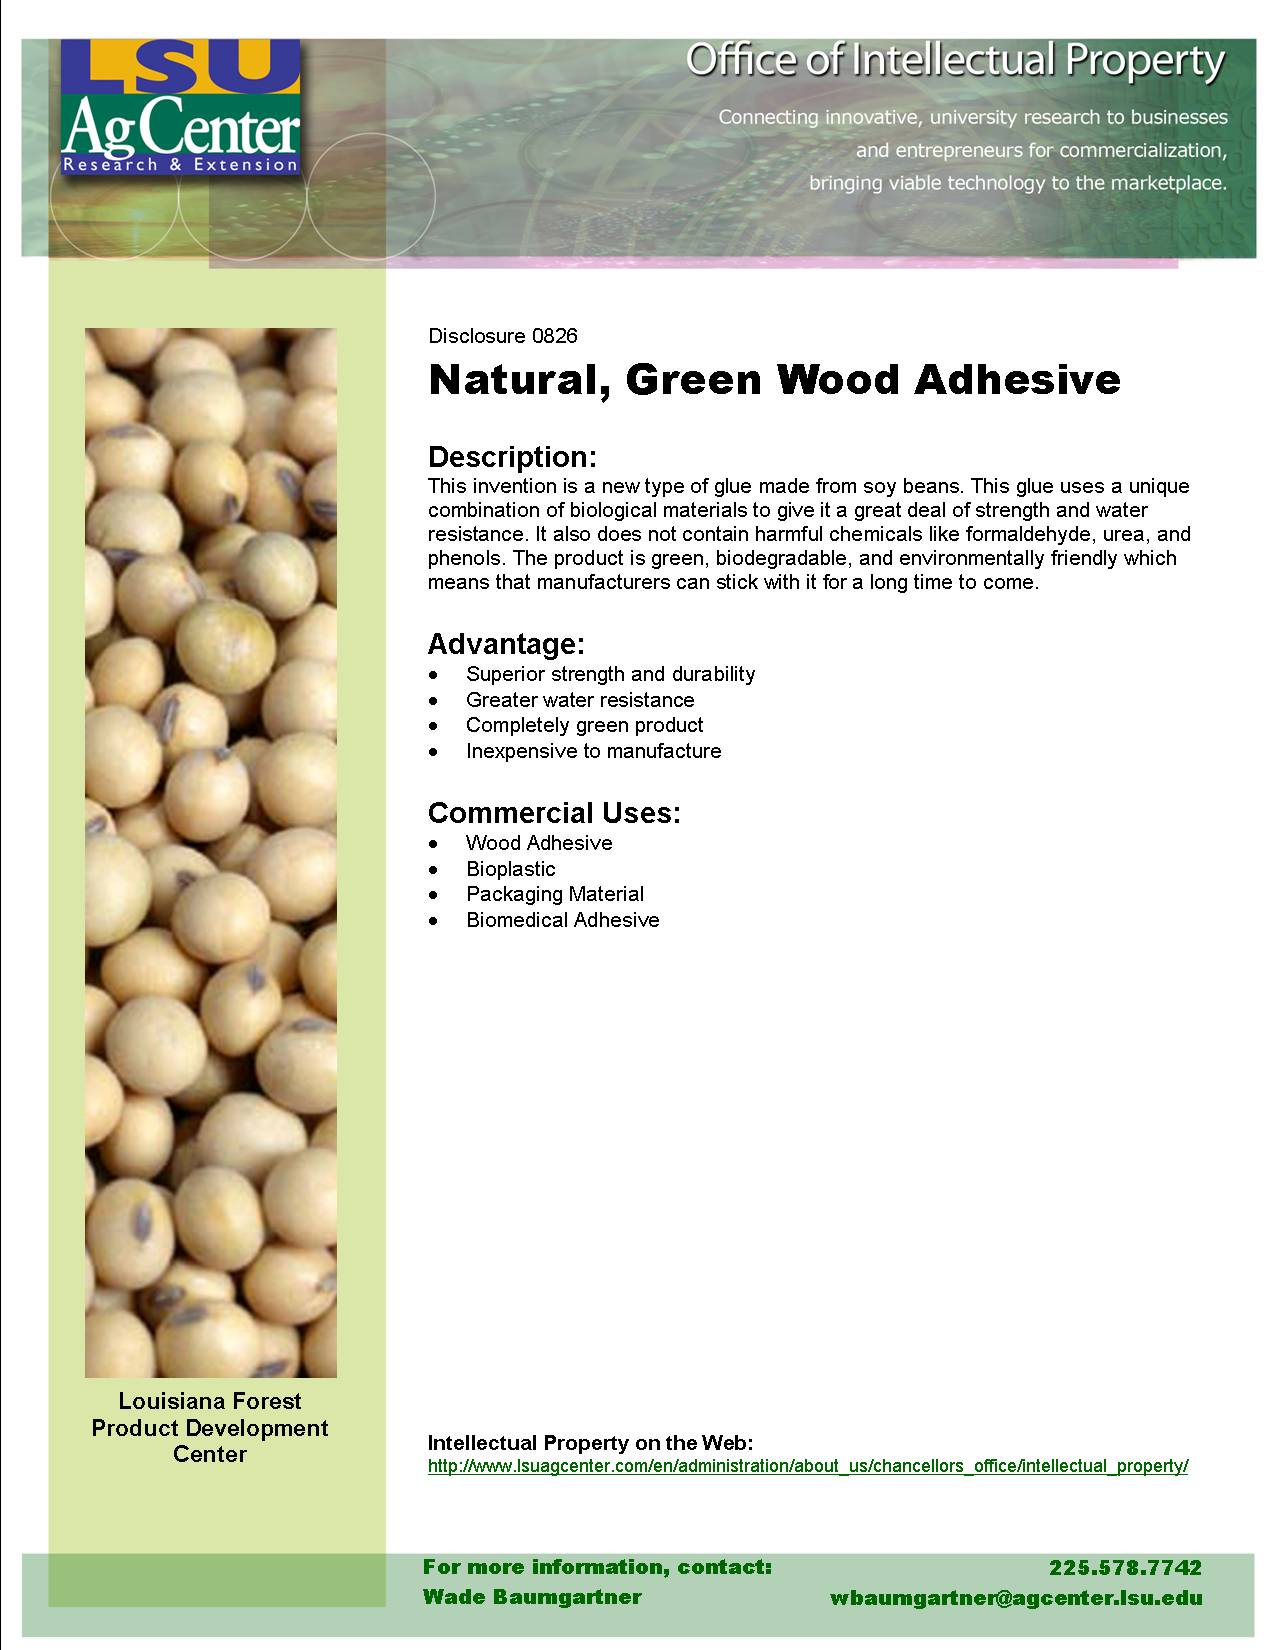 Natural, Green Wood Adhesive